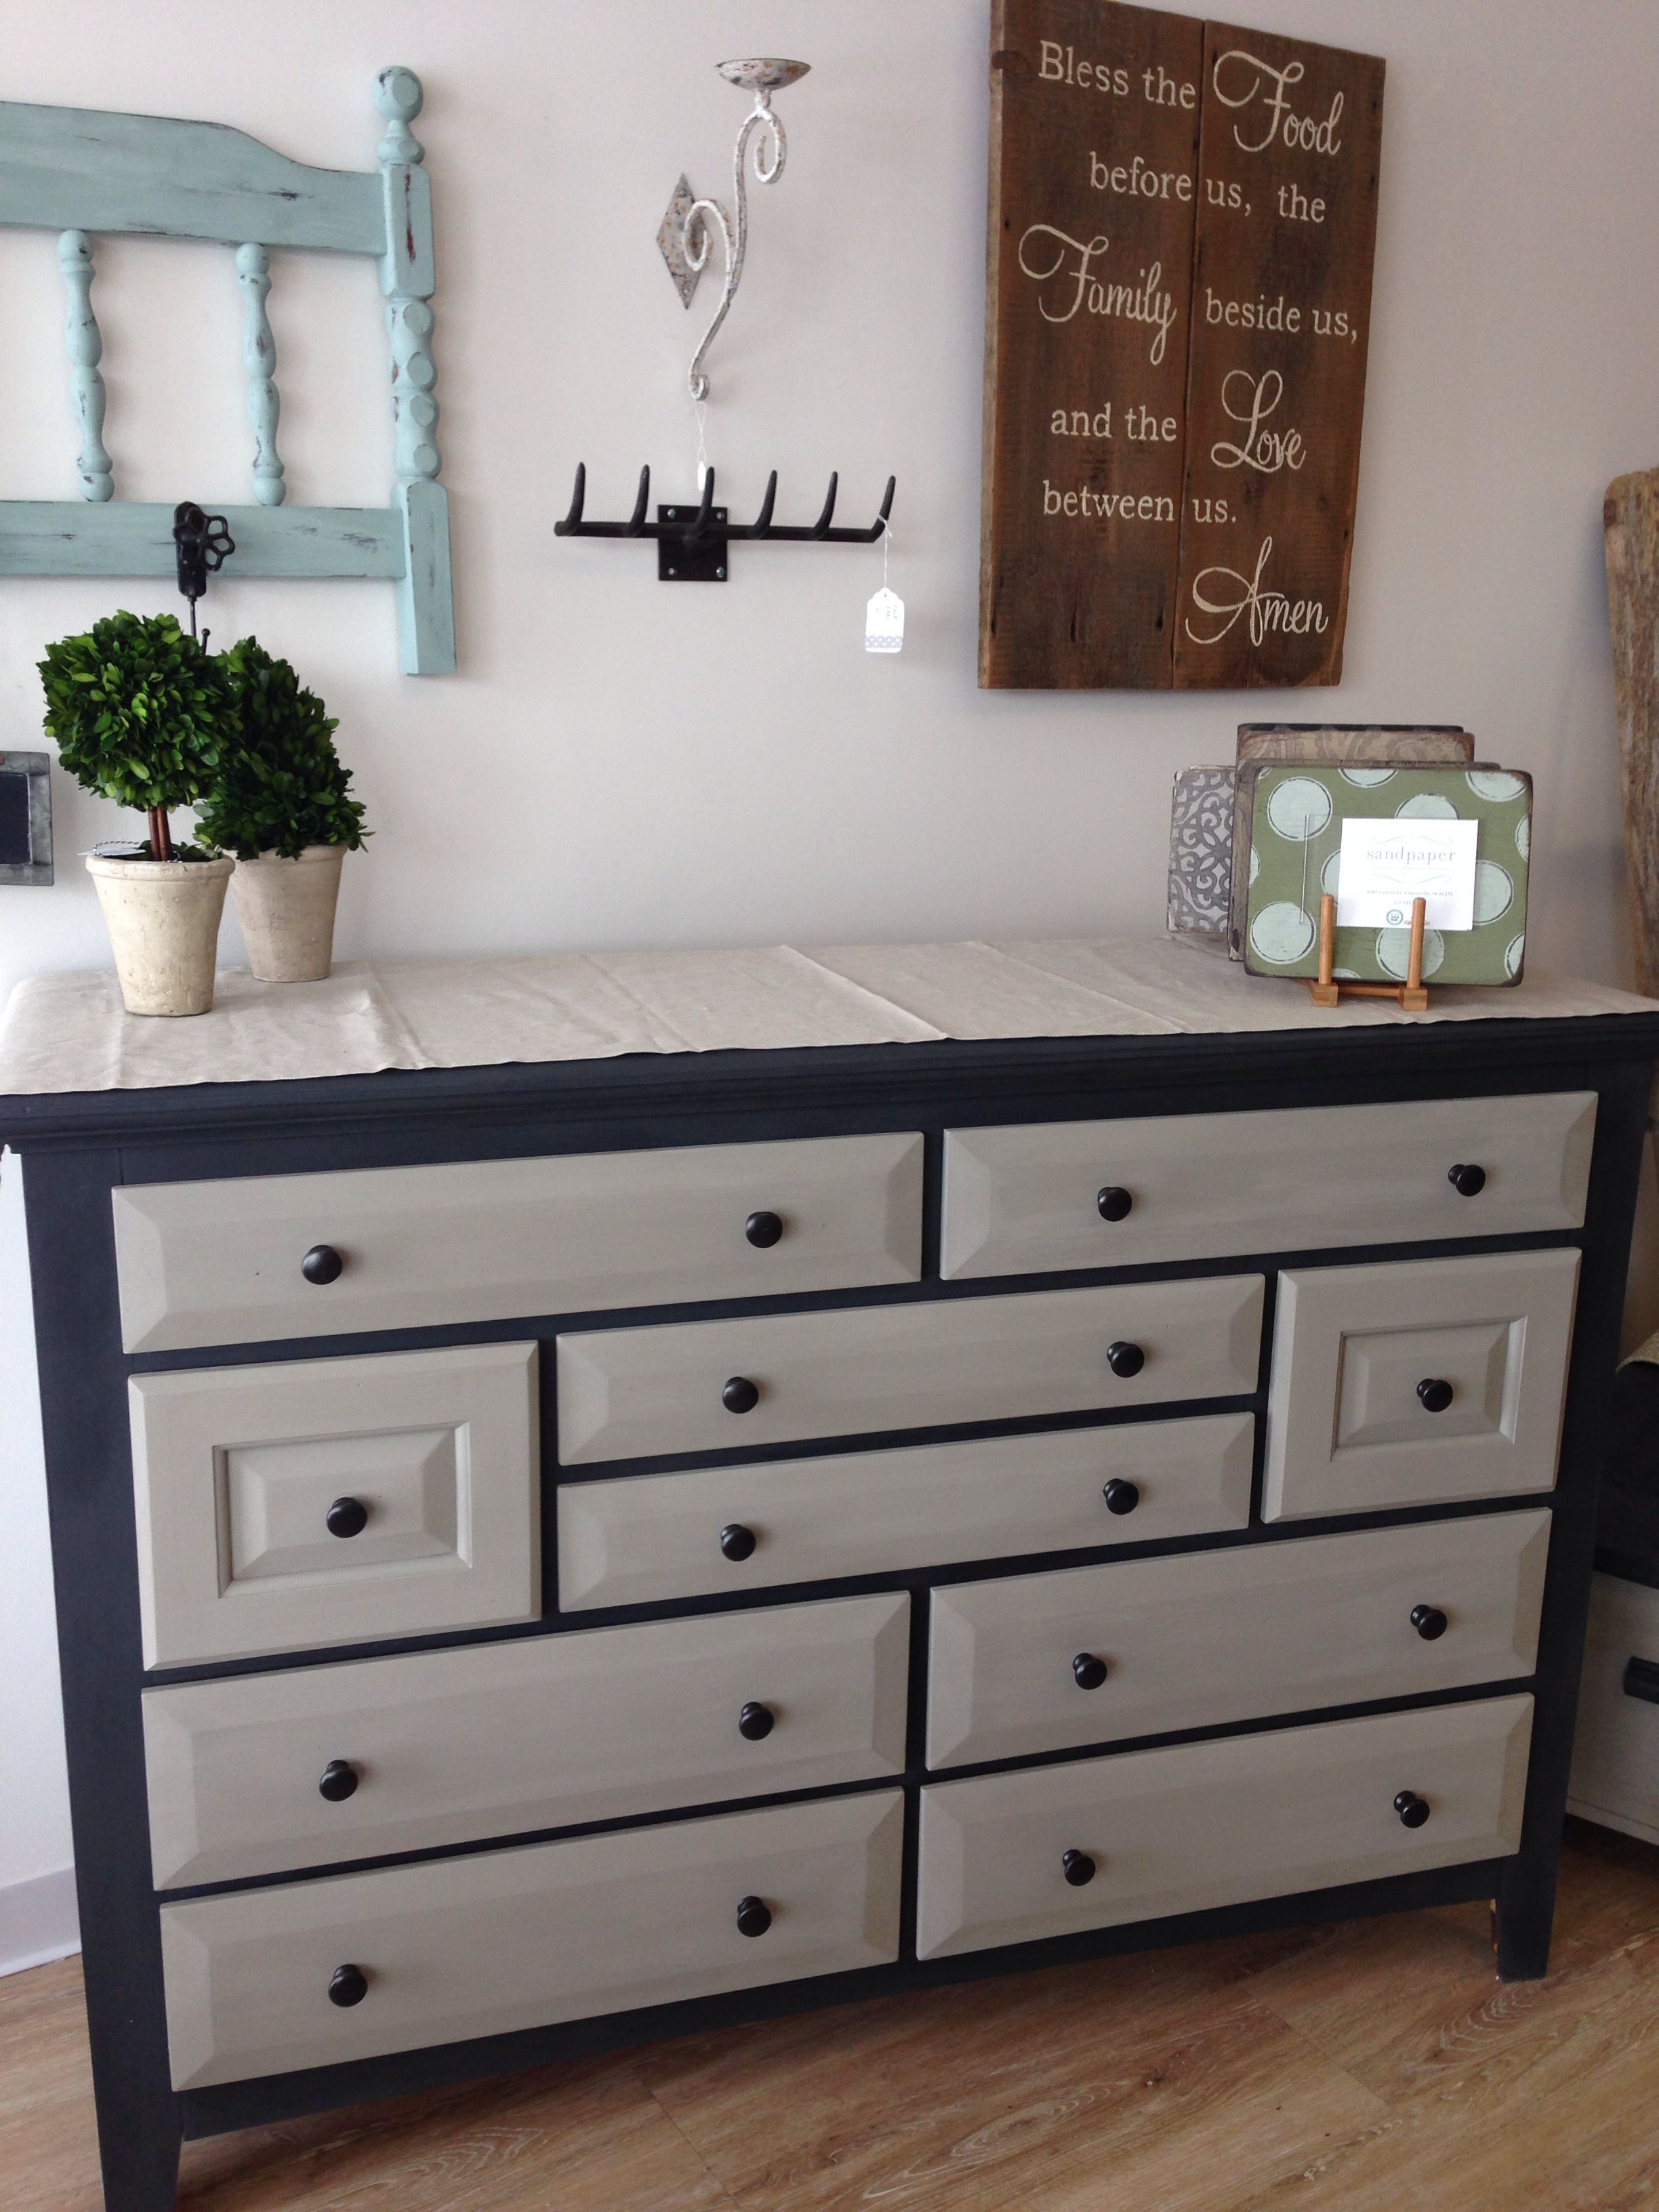 graphite french linen and cream chalk paint decorative paint by annie sloan our shop. Black Bedroom Furniture Sets. Home Design Ideas